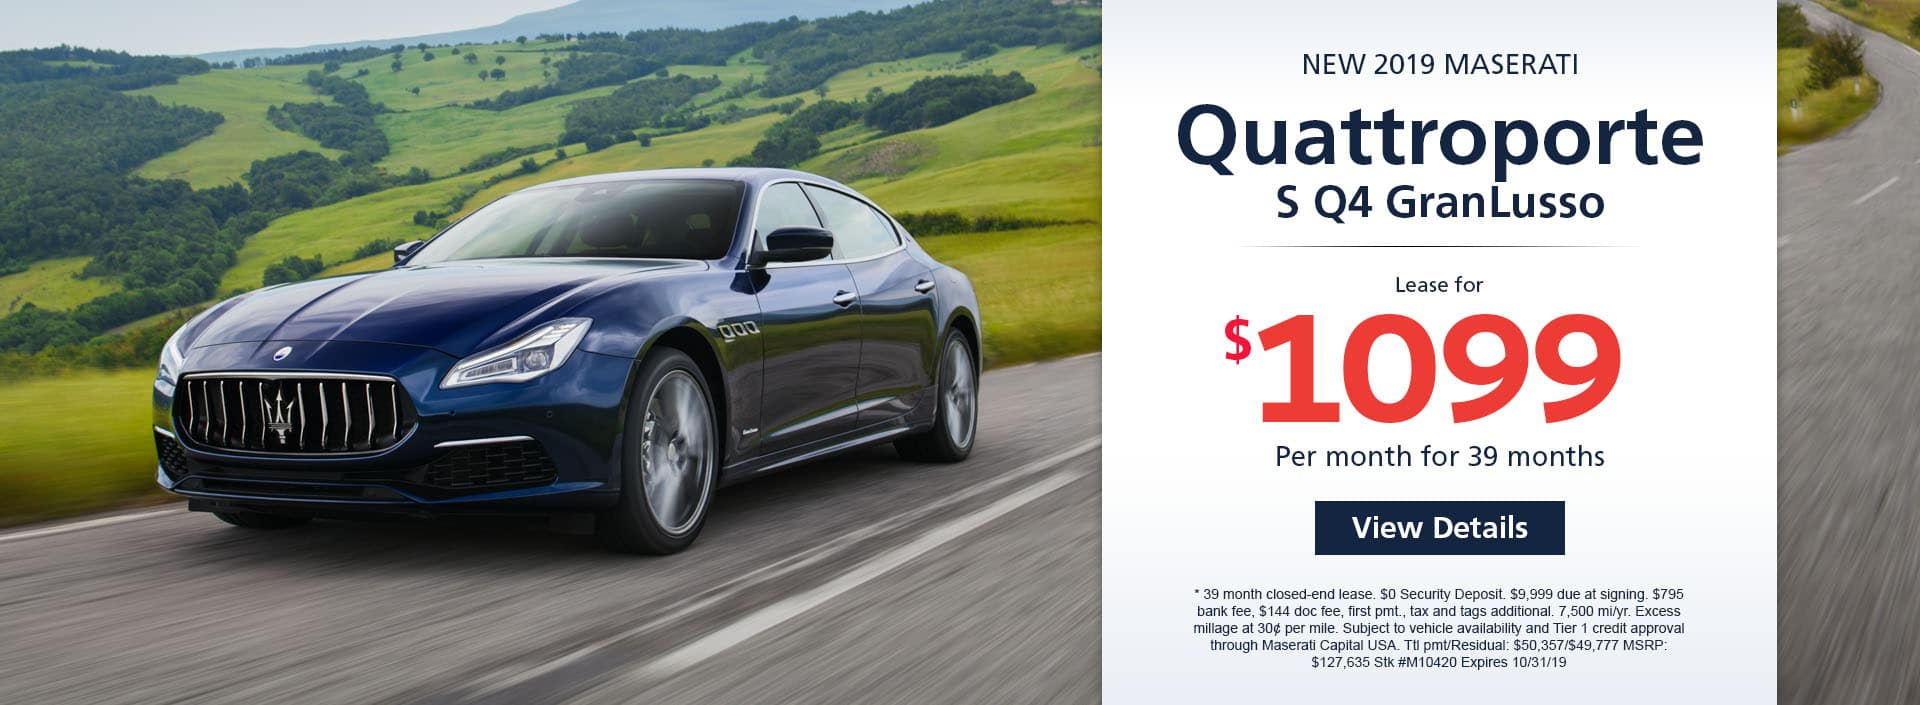 Lease a new 2019 Maserati Quattroporte S Q4 GranLusso for $1,099 a month for 39 months.